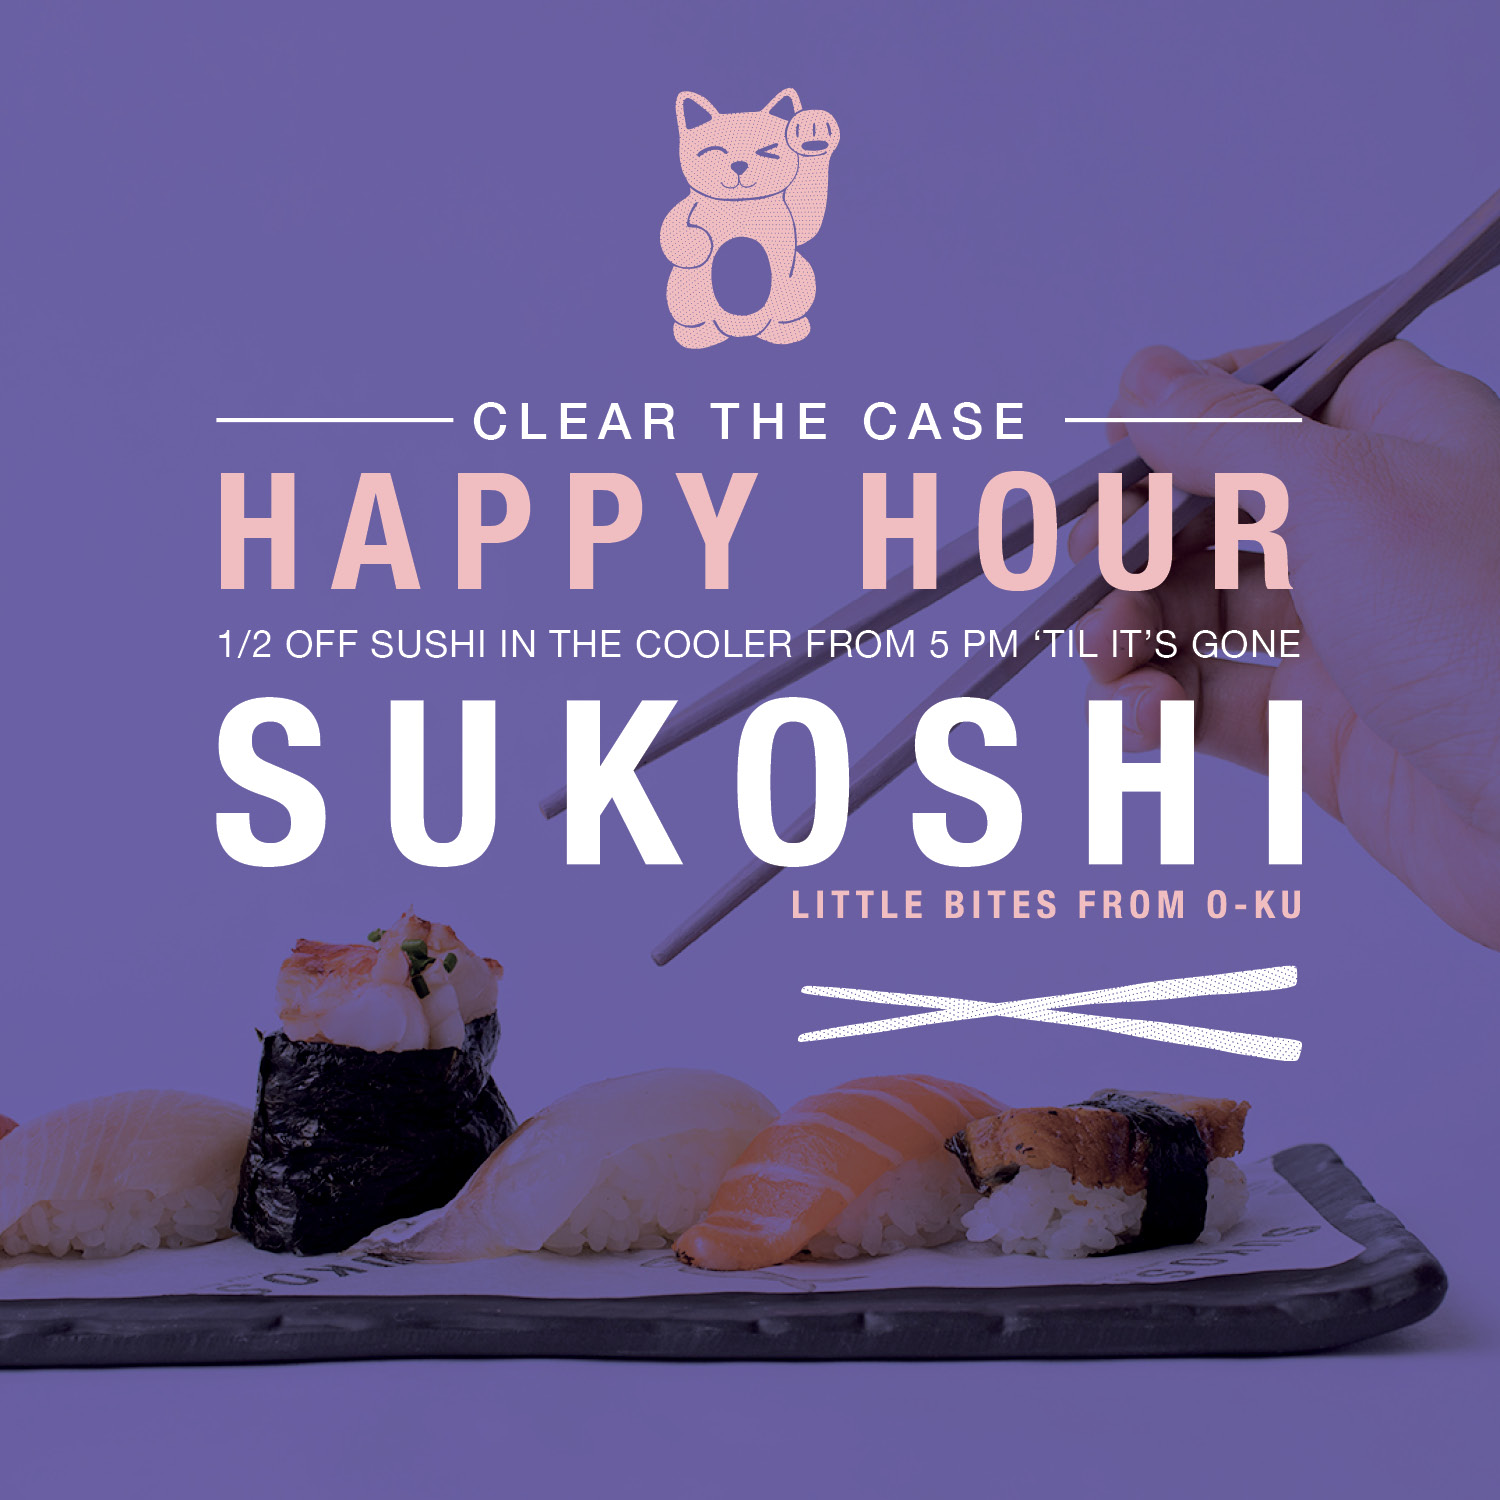 0818-ir suk- sushi happy hour graphics.jpg